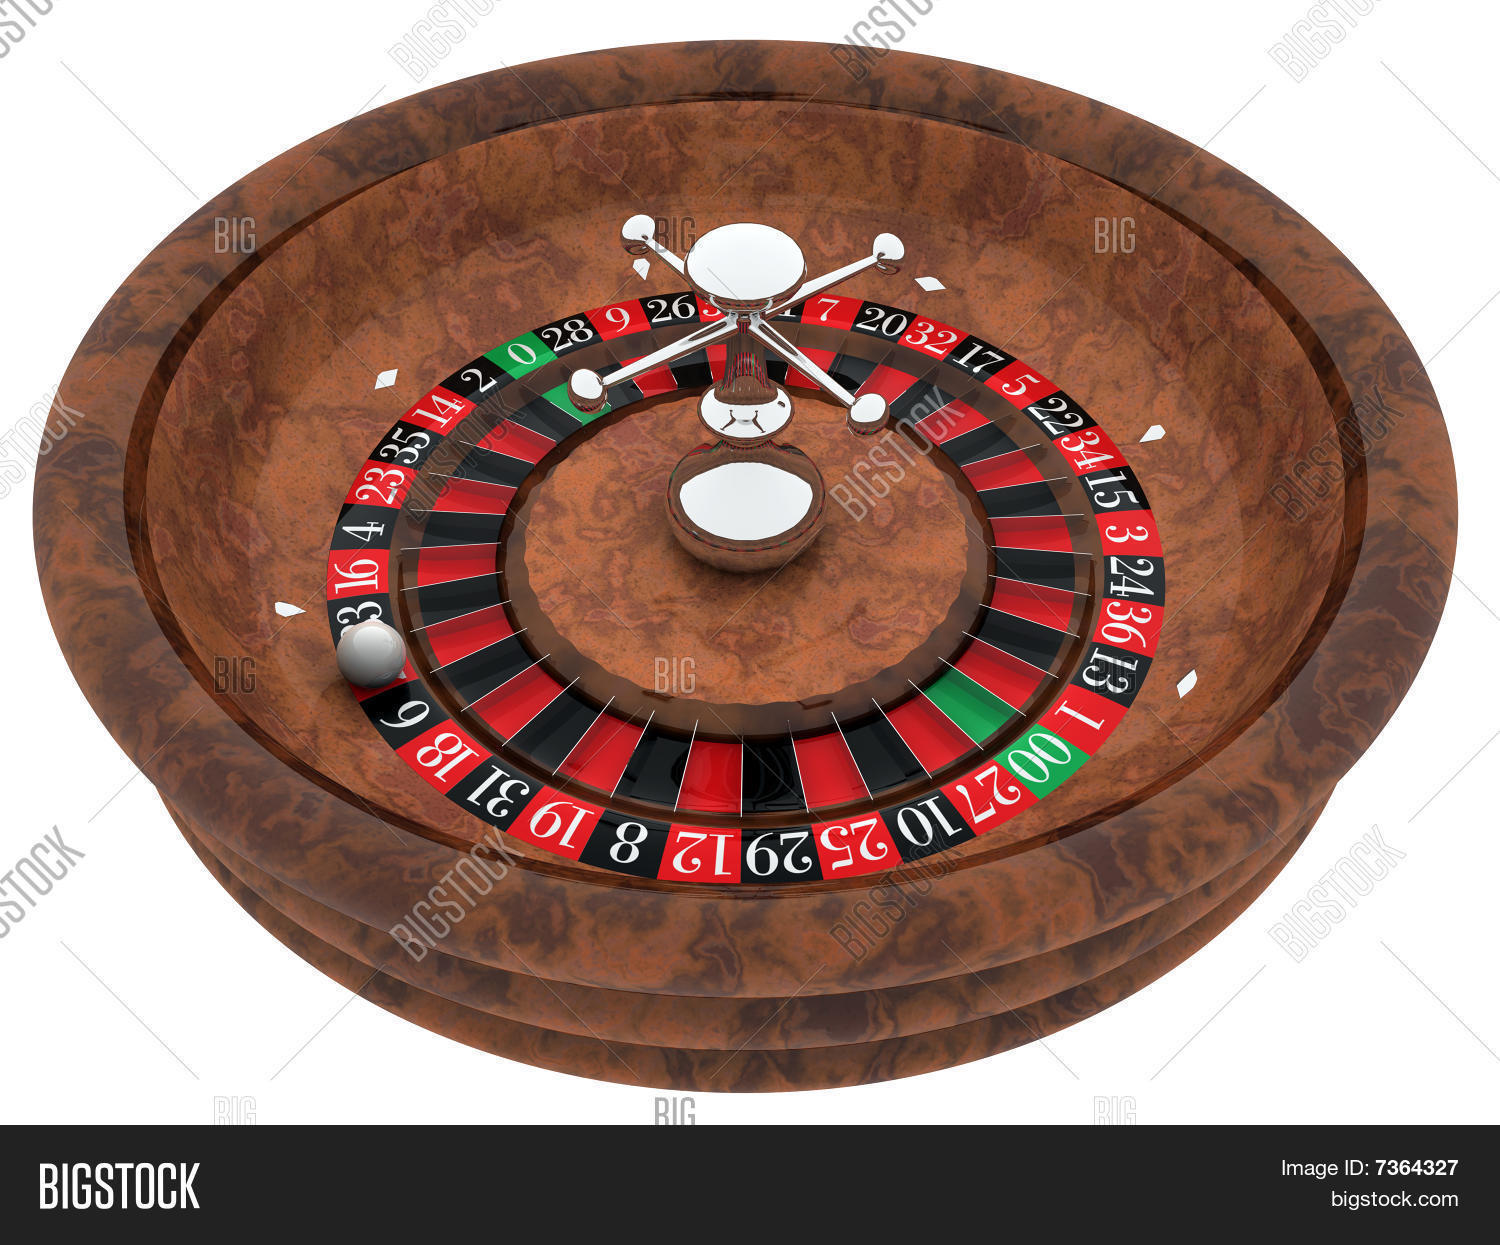 Roulette Image & Photo (Free Trial) | Bigstock